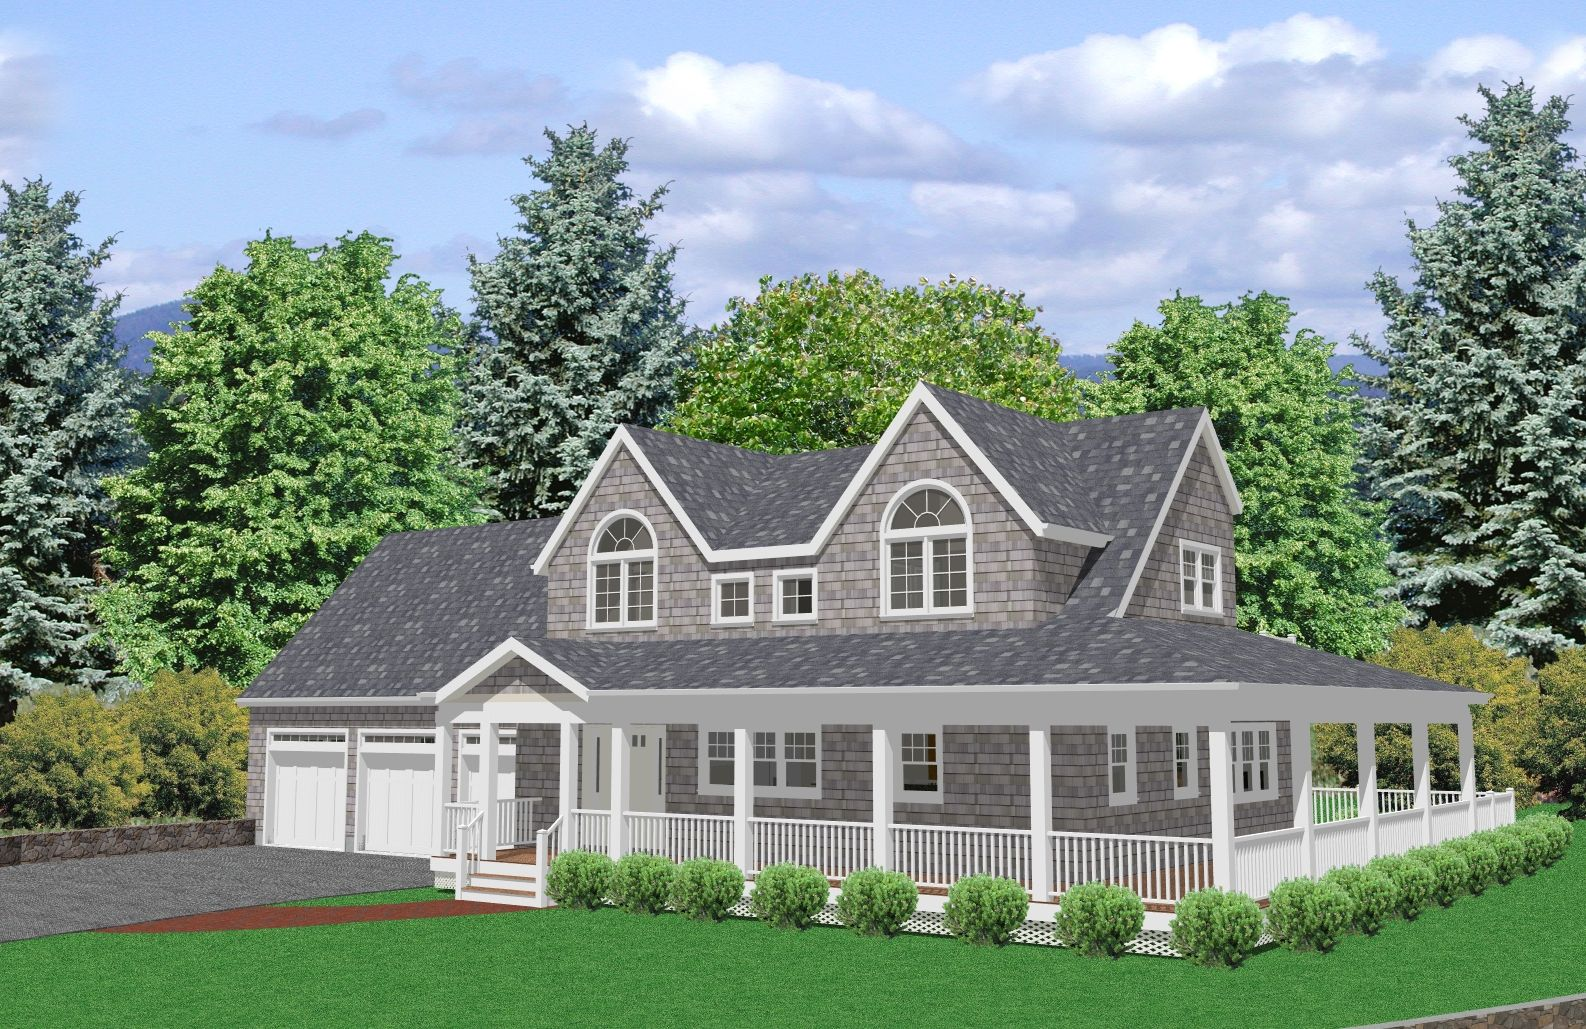 Cape cod style house plans 2027 sq ft 3 bedroom cape cod for Cape cod style house